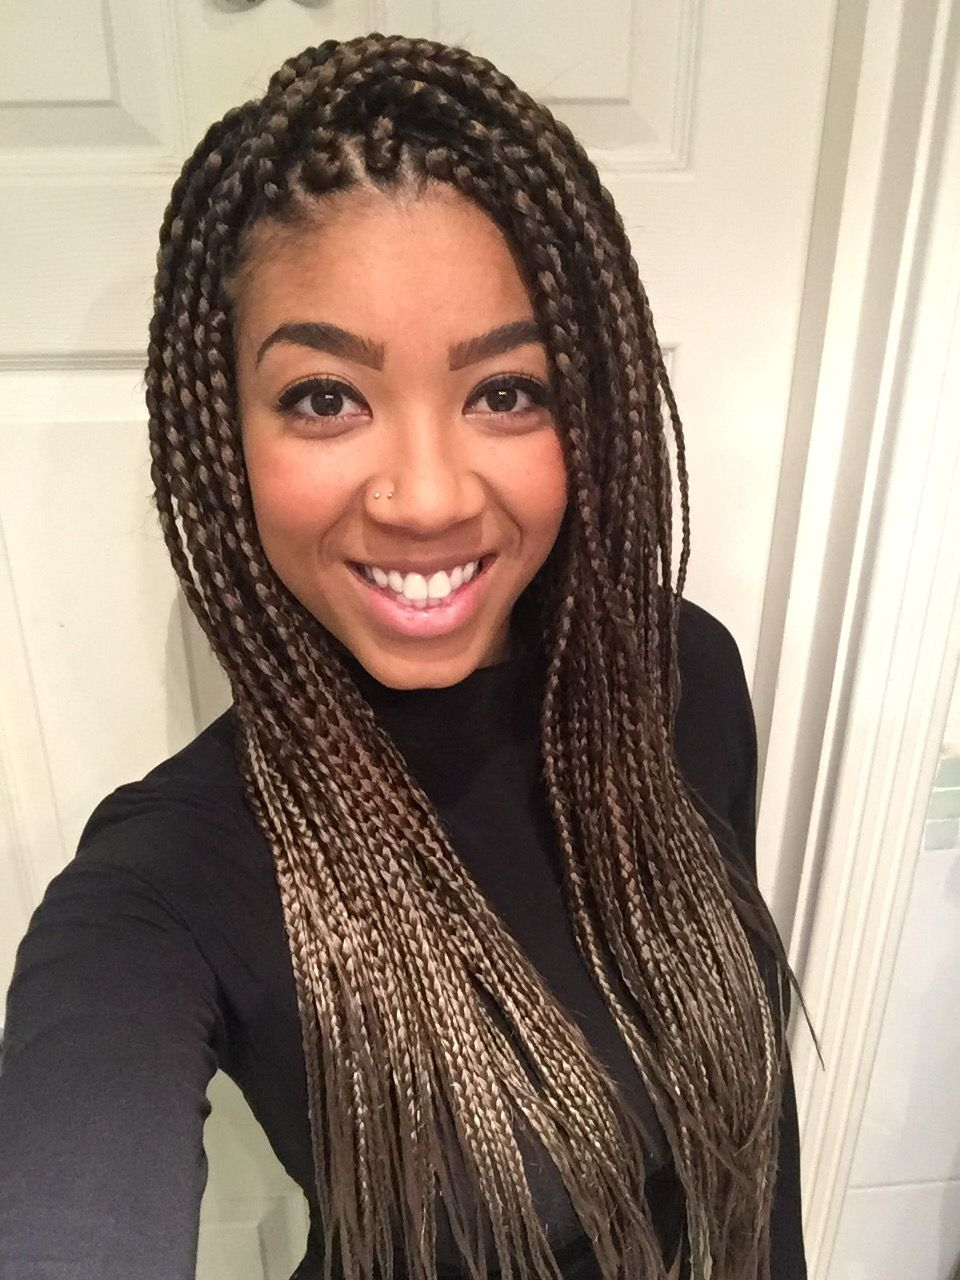 Most Current Light Brown Braid Hairstyles Regarding Box Braids! Medium Long, Two Tone Light Brown/golden (View 12 of 20)